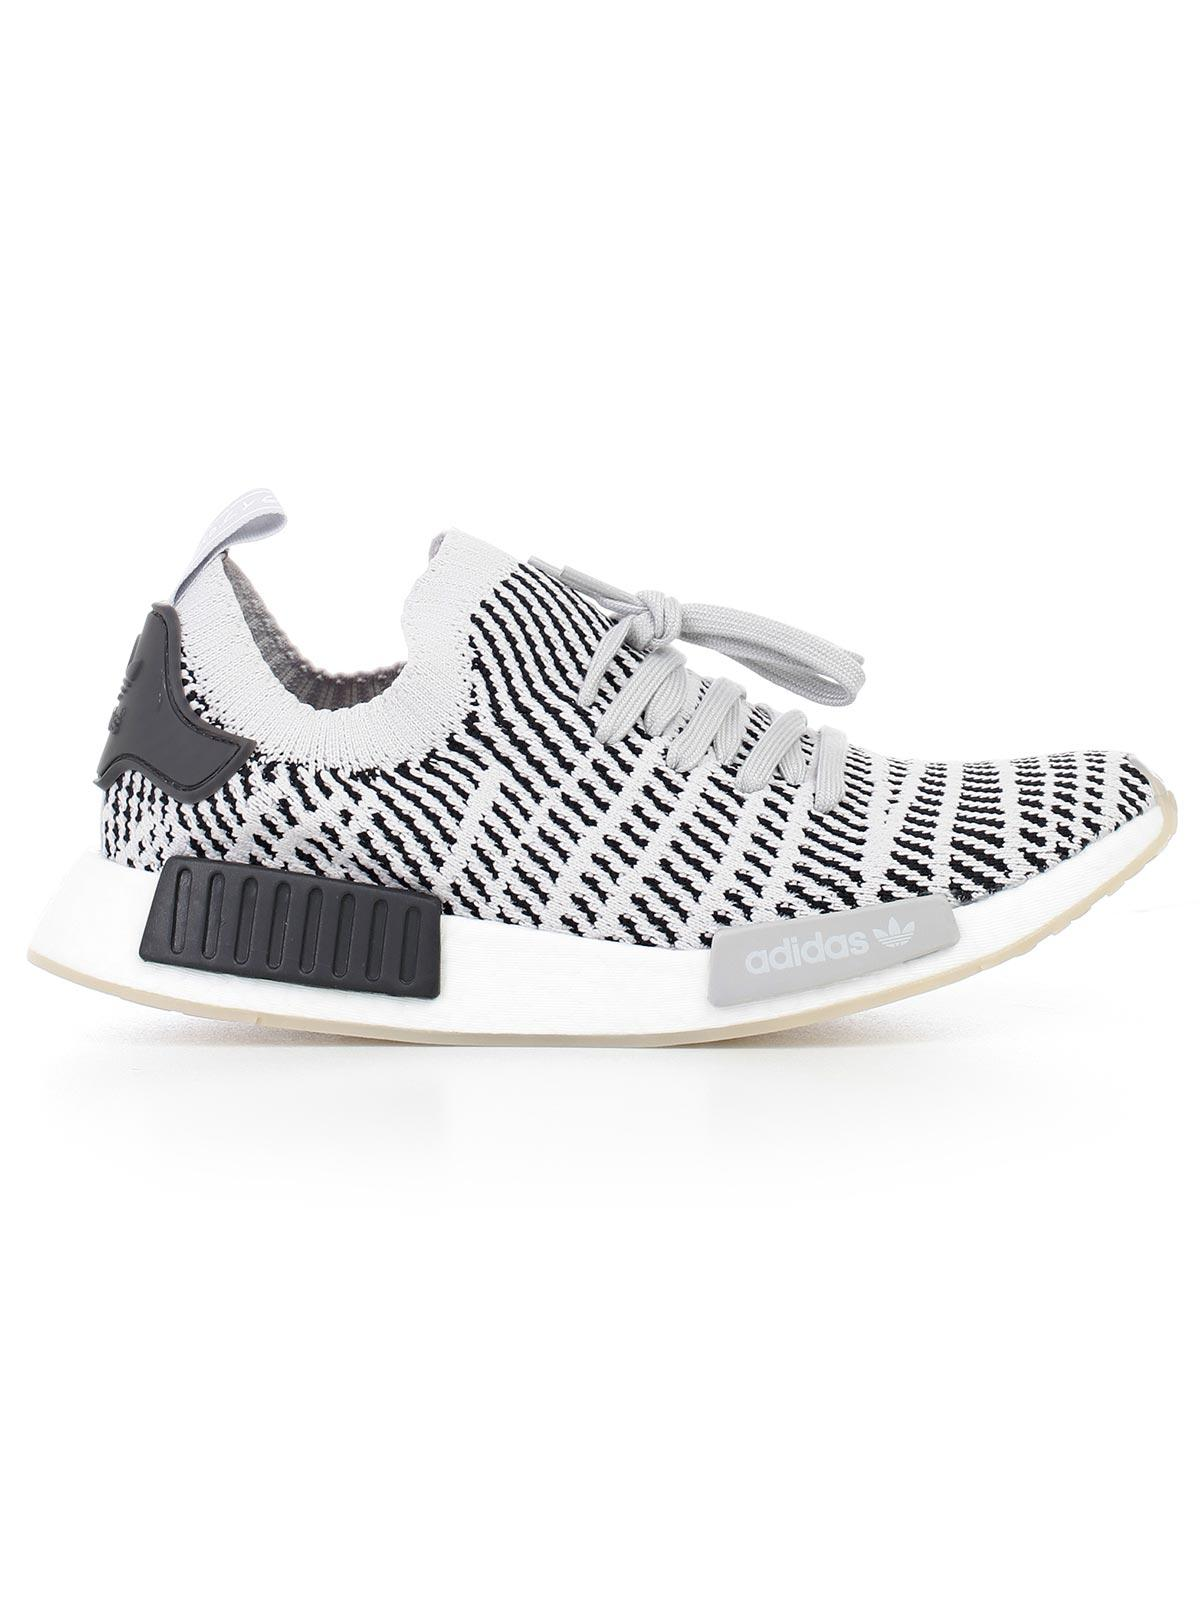 Lyst - Adidas Originals Sneakers Nmd R1 in Gray for Men 932d6f354